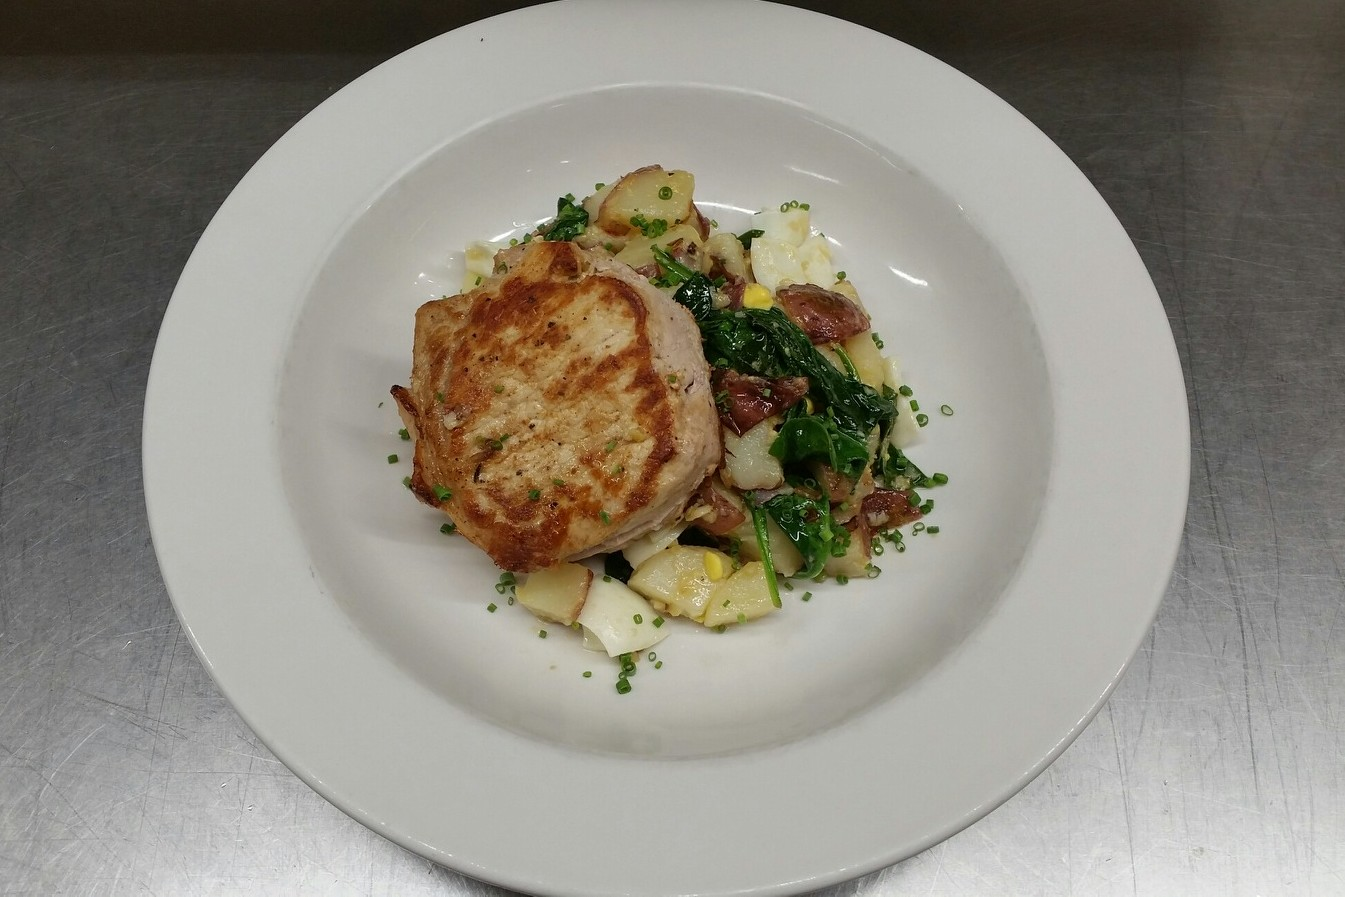 Seared Pork Chops on Warm Potato Salad